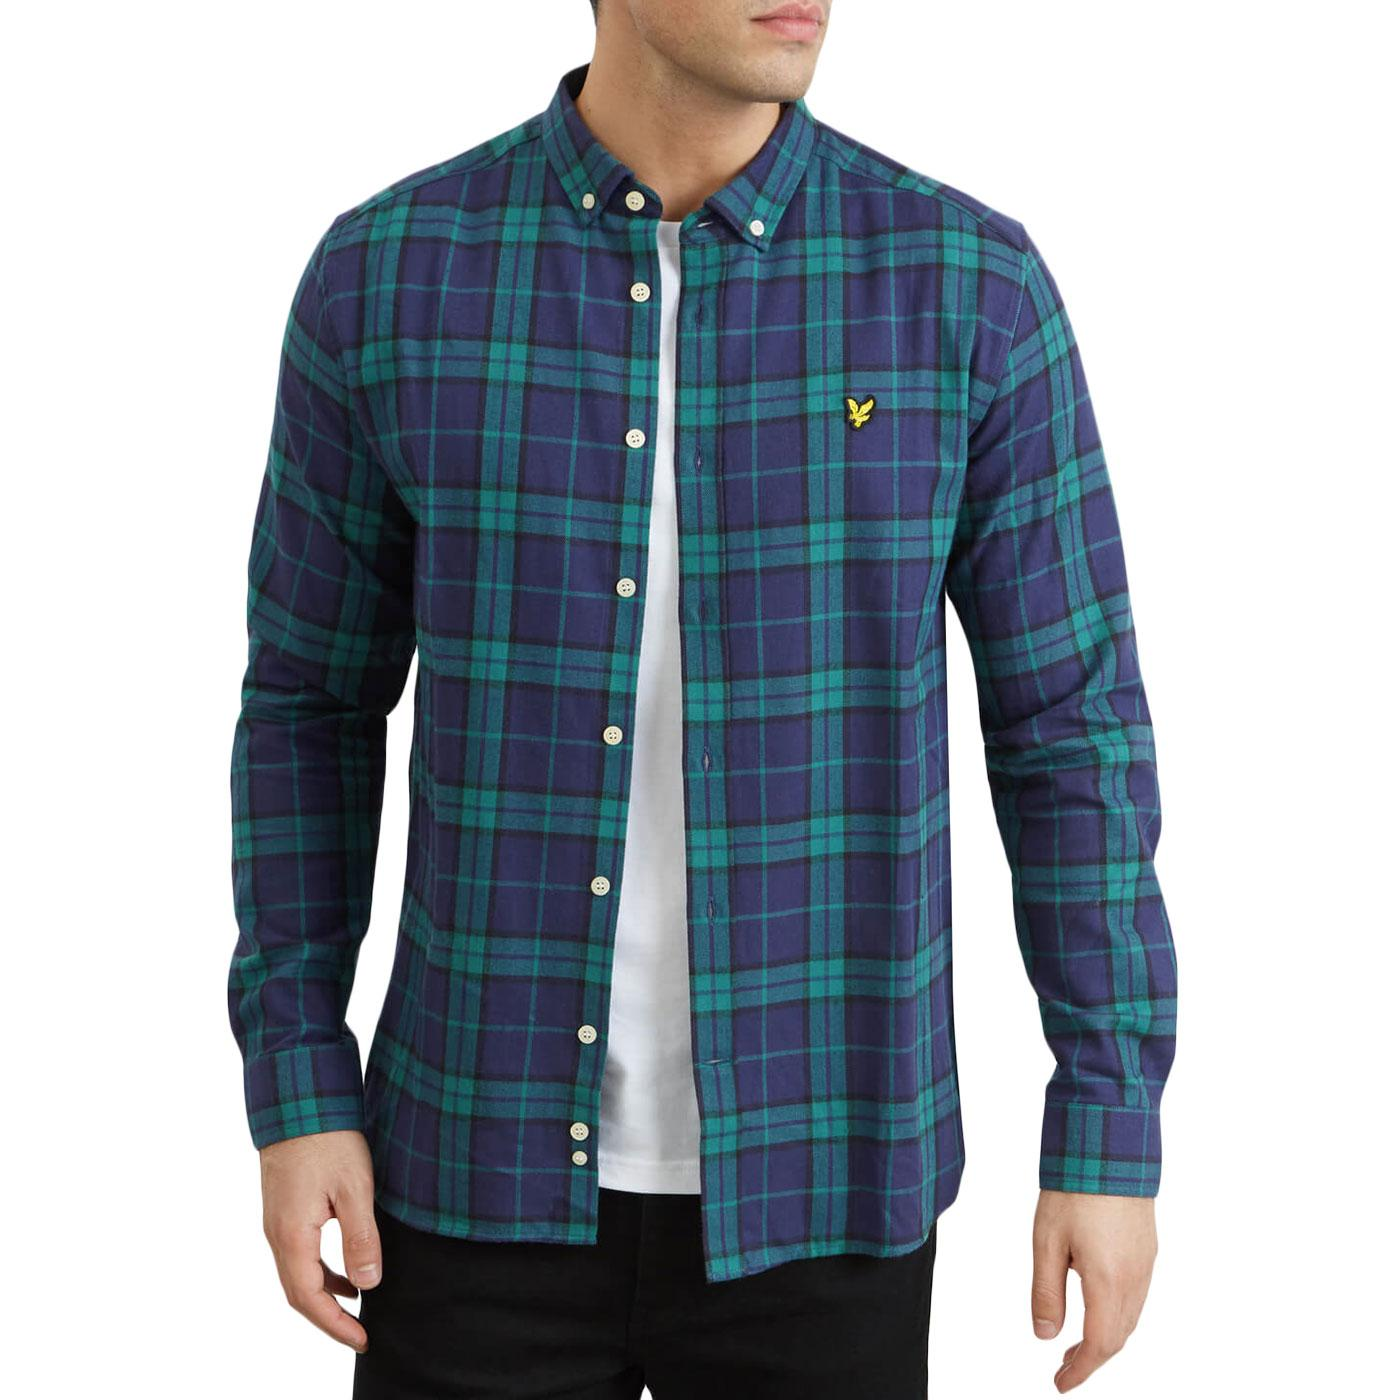 LYLE & SCOTT Retro Mod Flannel Check Shirt (AG)